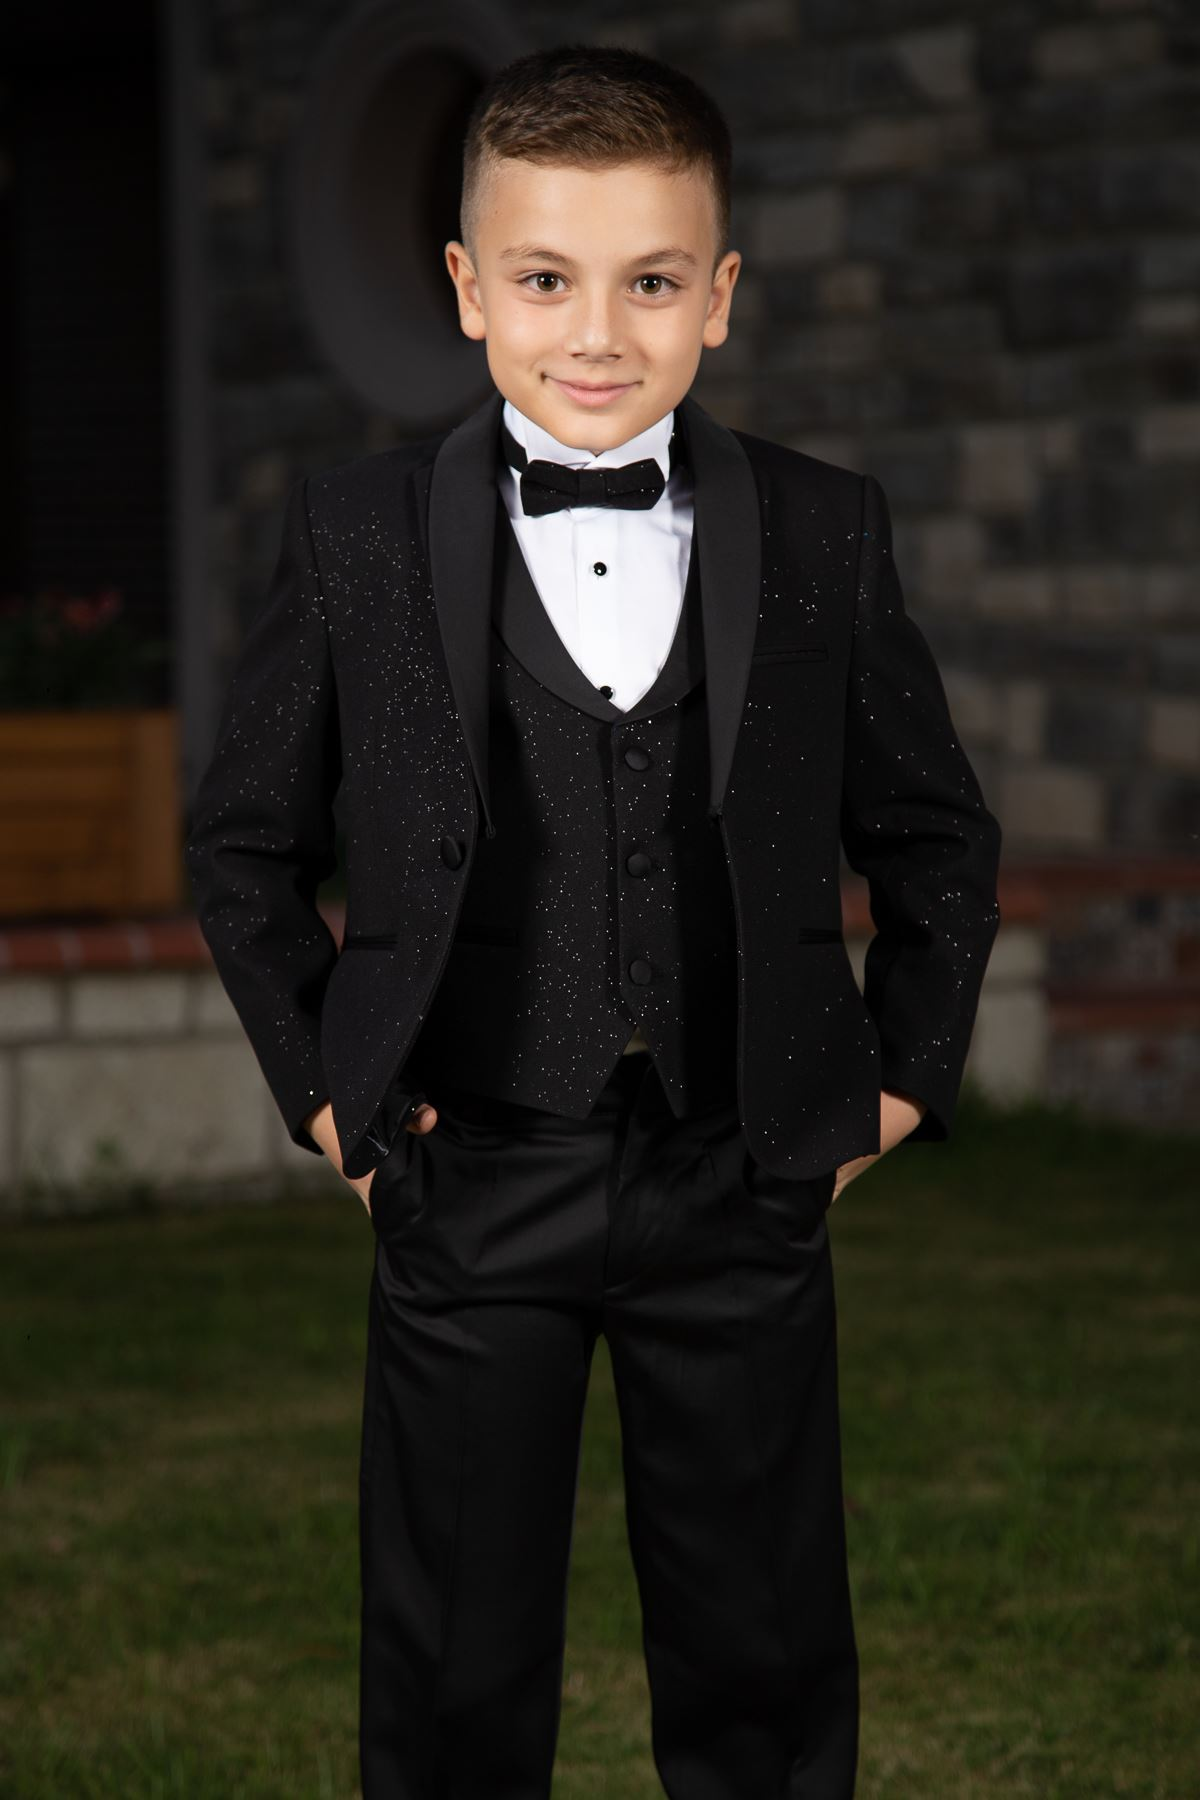 Silvery Fabric, Removable Shawl Collar, Full Set 4 Piece Boy Special Suit 181 Black